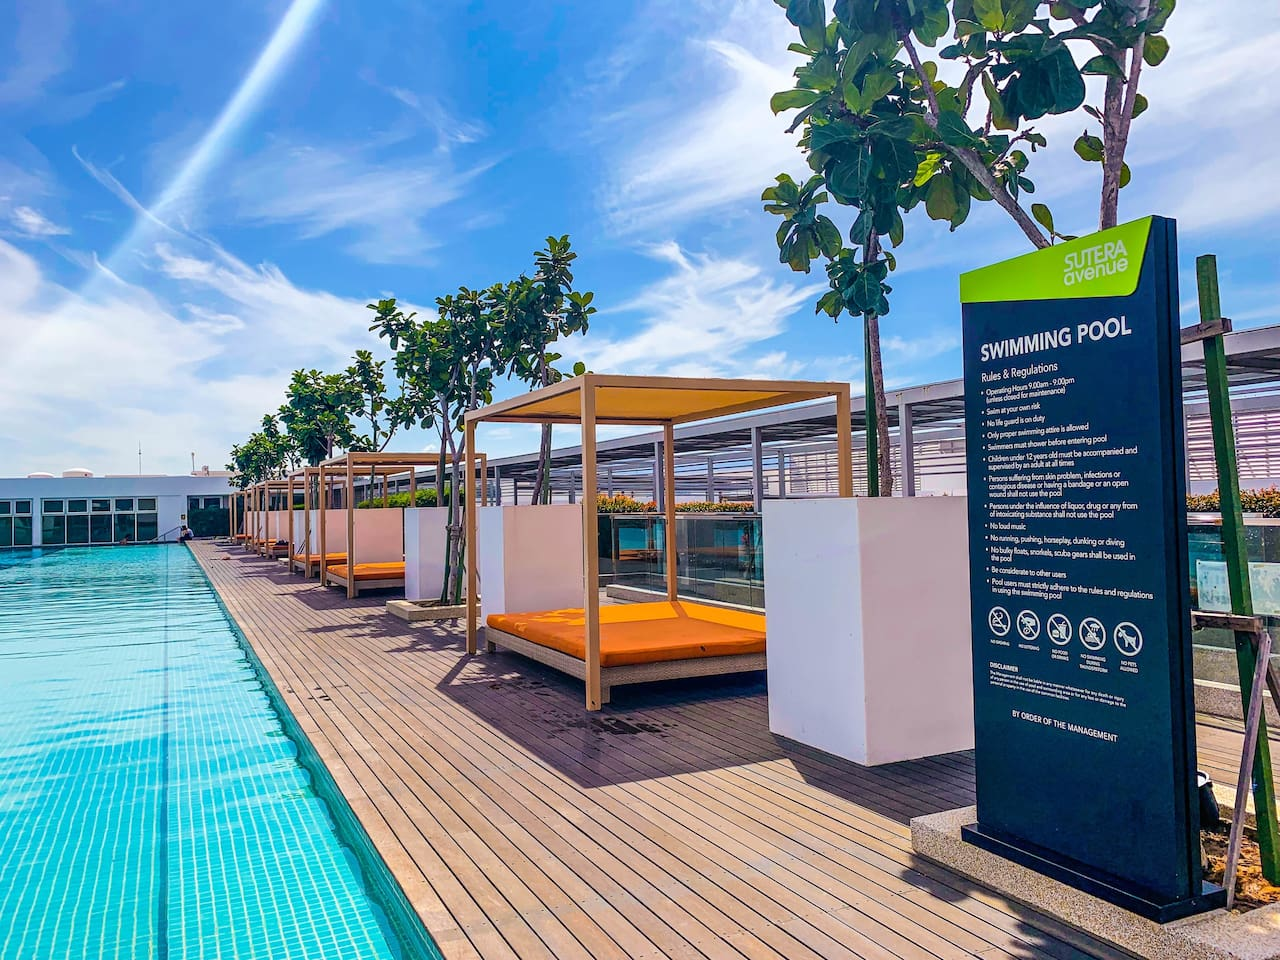 Rooftop infinity swimming pool with city view awaits you!